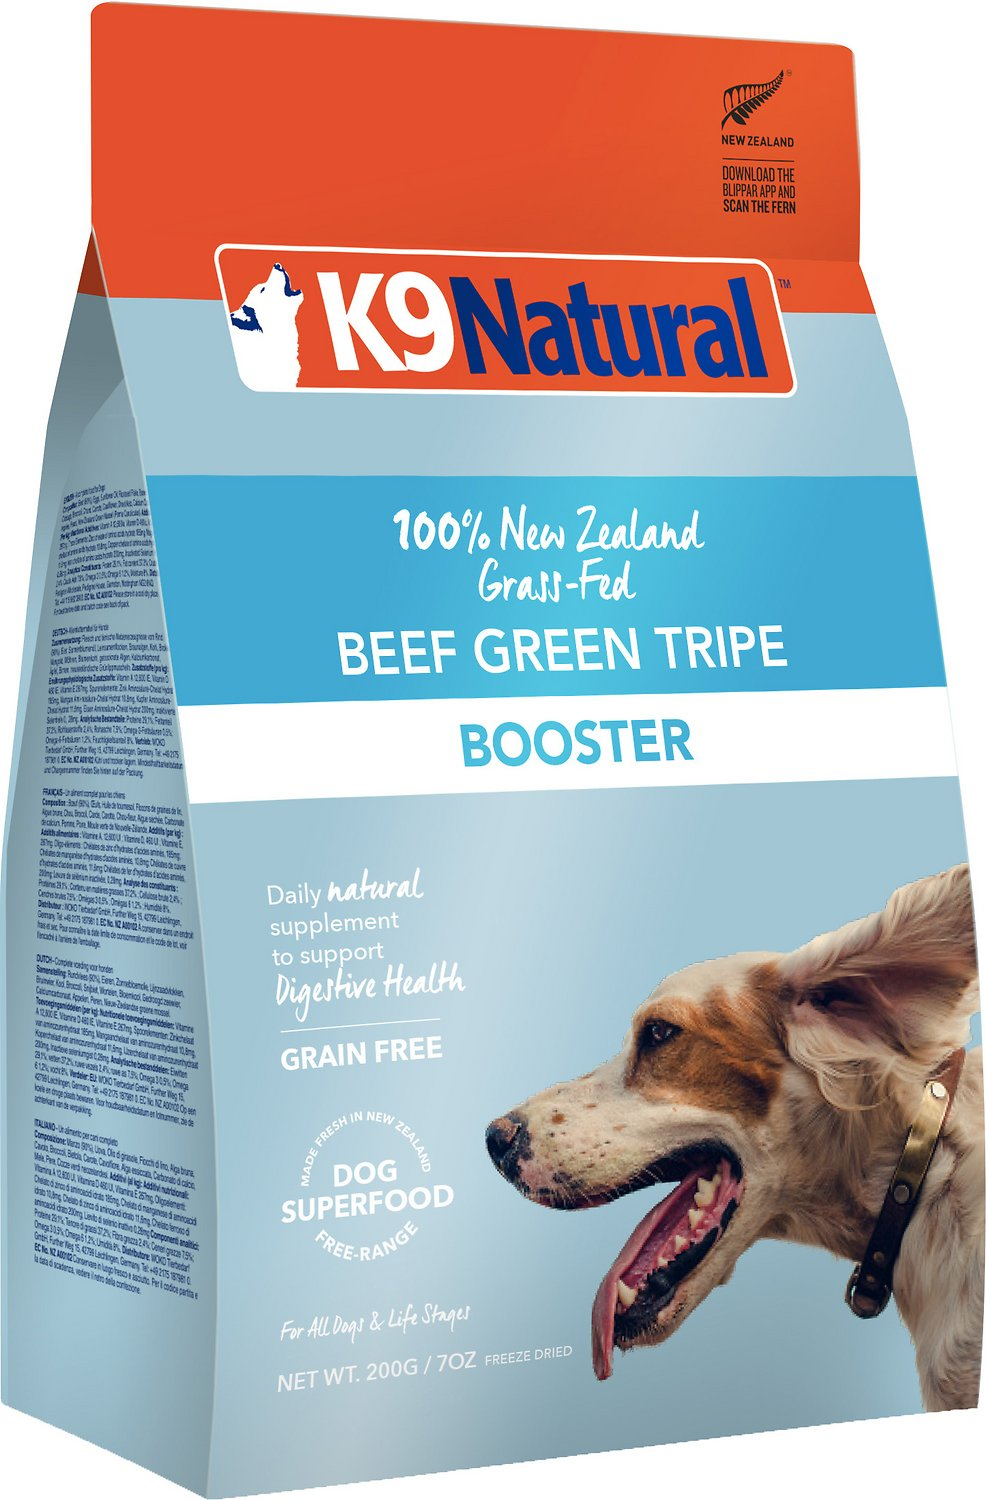 K9 Natural Booster Beef Green Tripe Grain-Free Freeze-Dried Dog Supplement, 8.8-oz bag